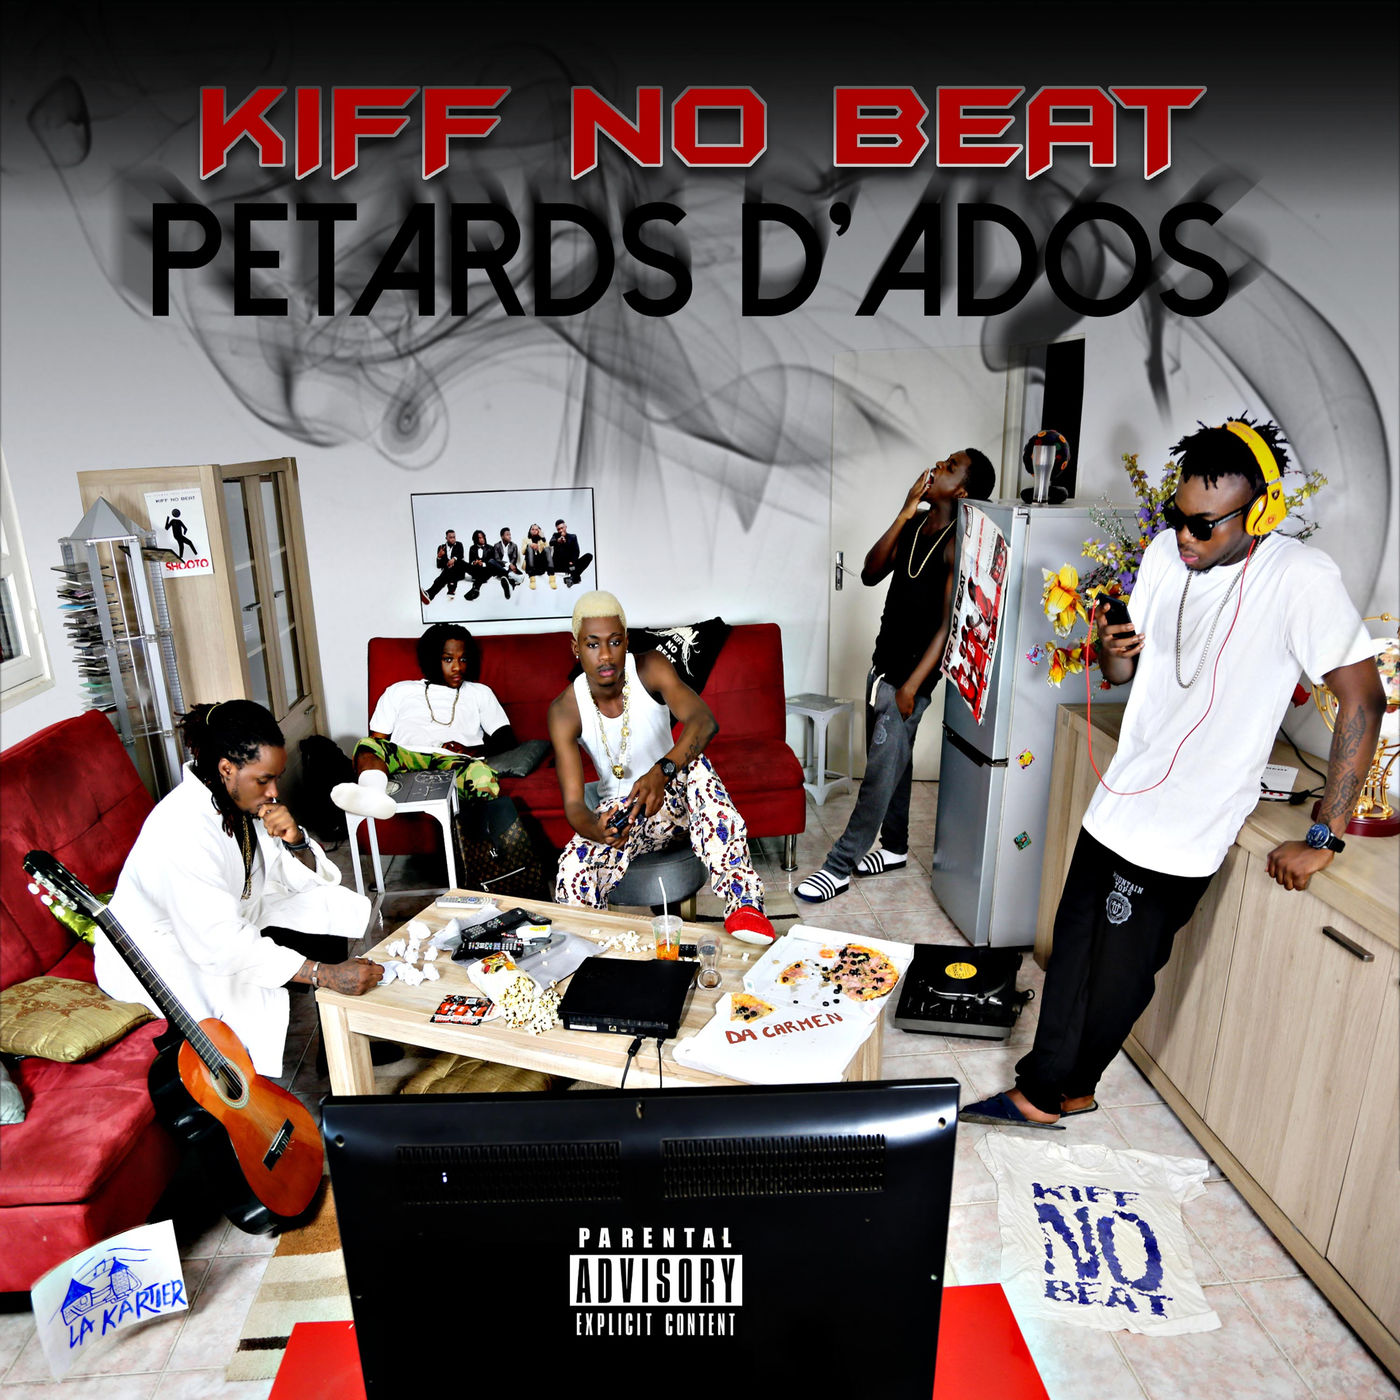 Cover Kiff No Beat - Pétards d'ados